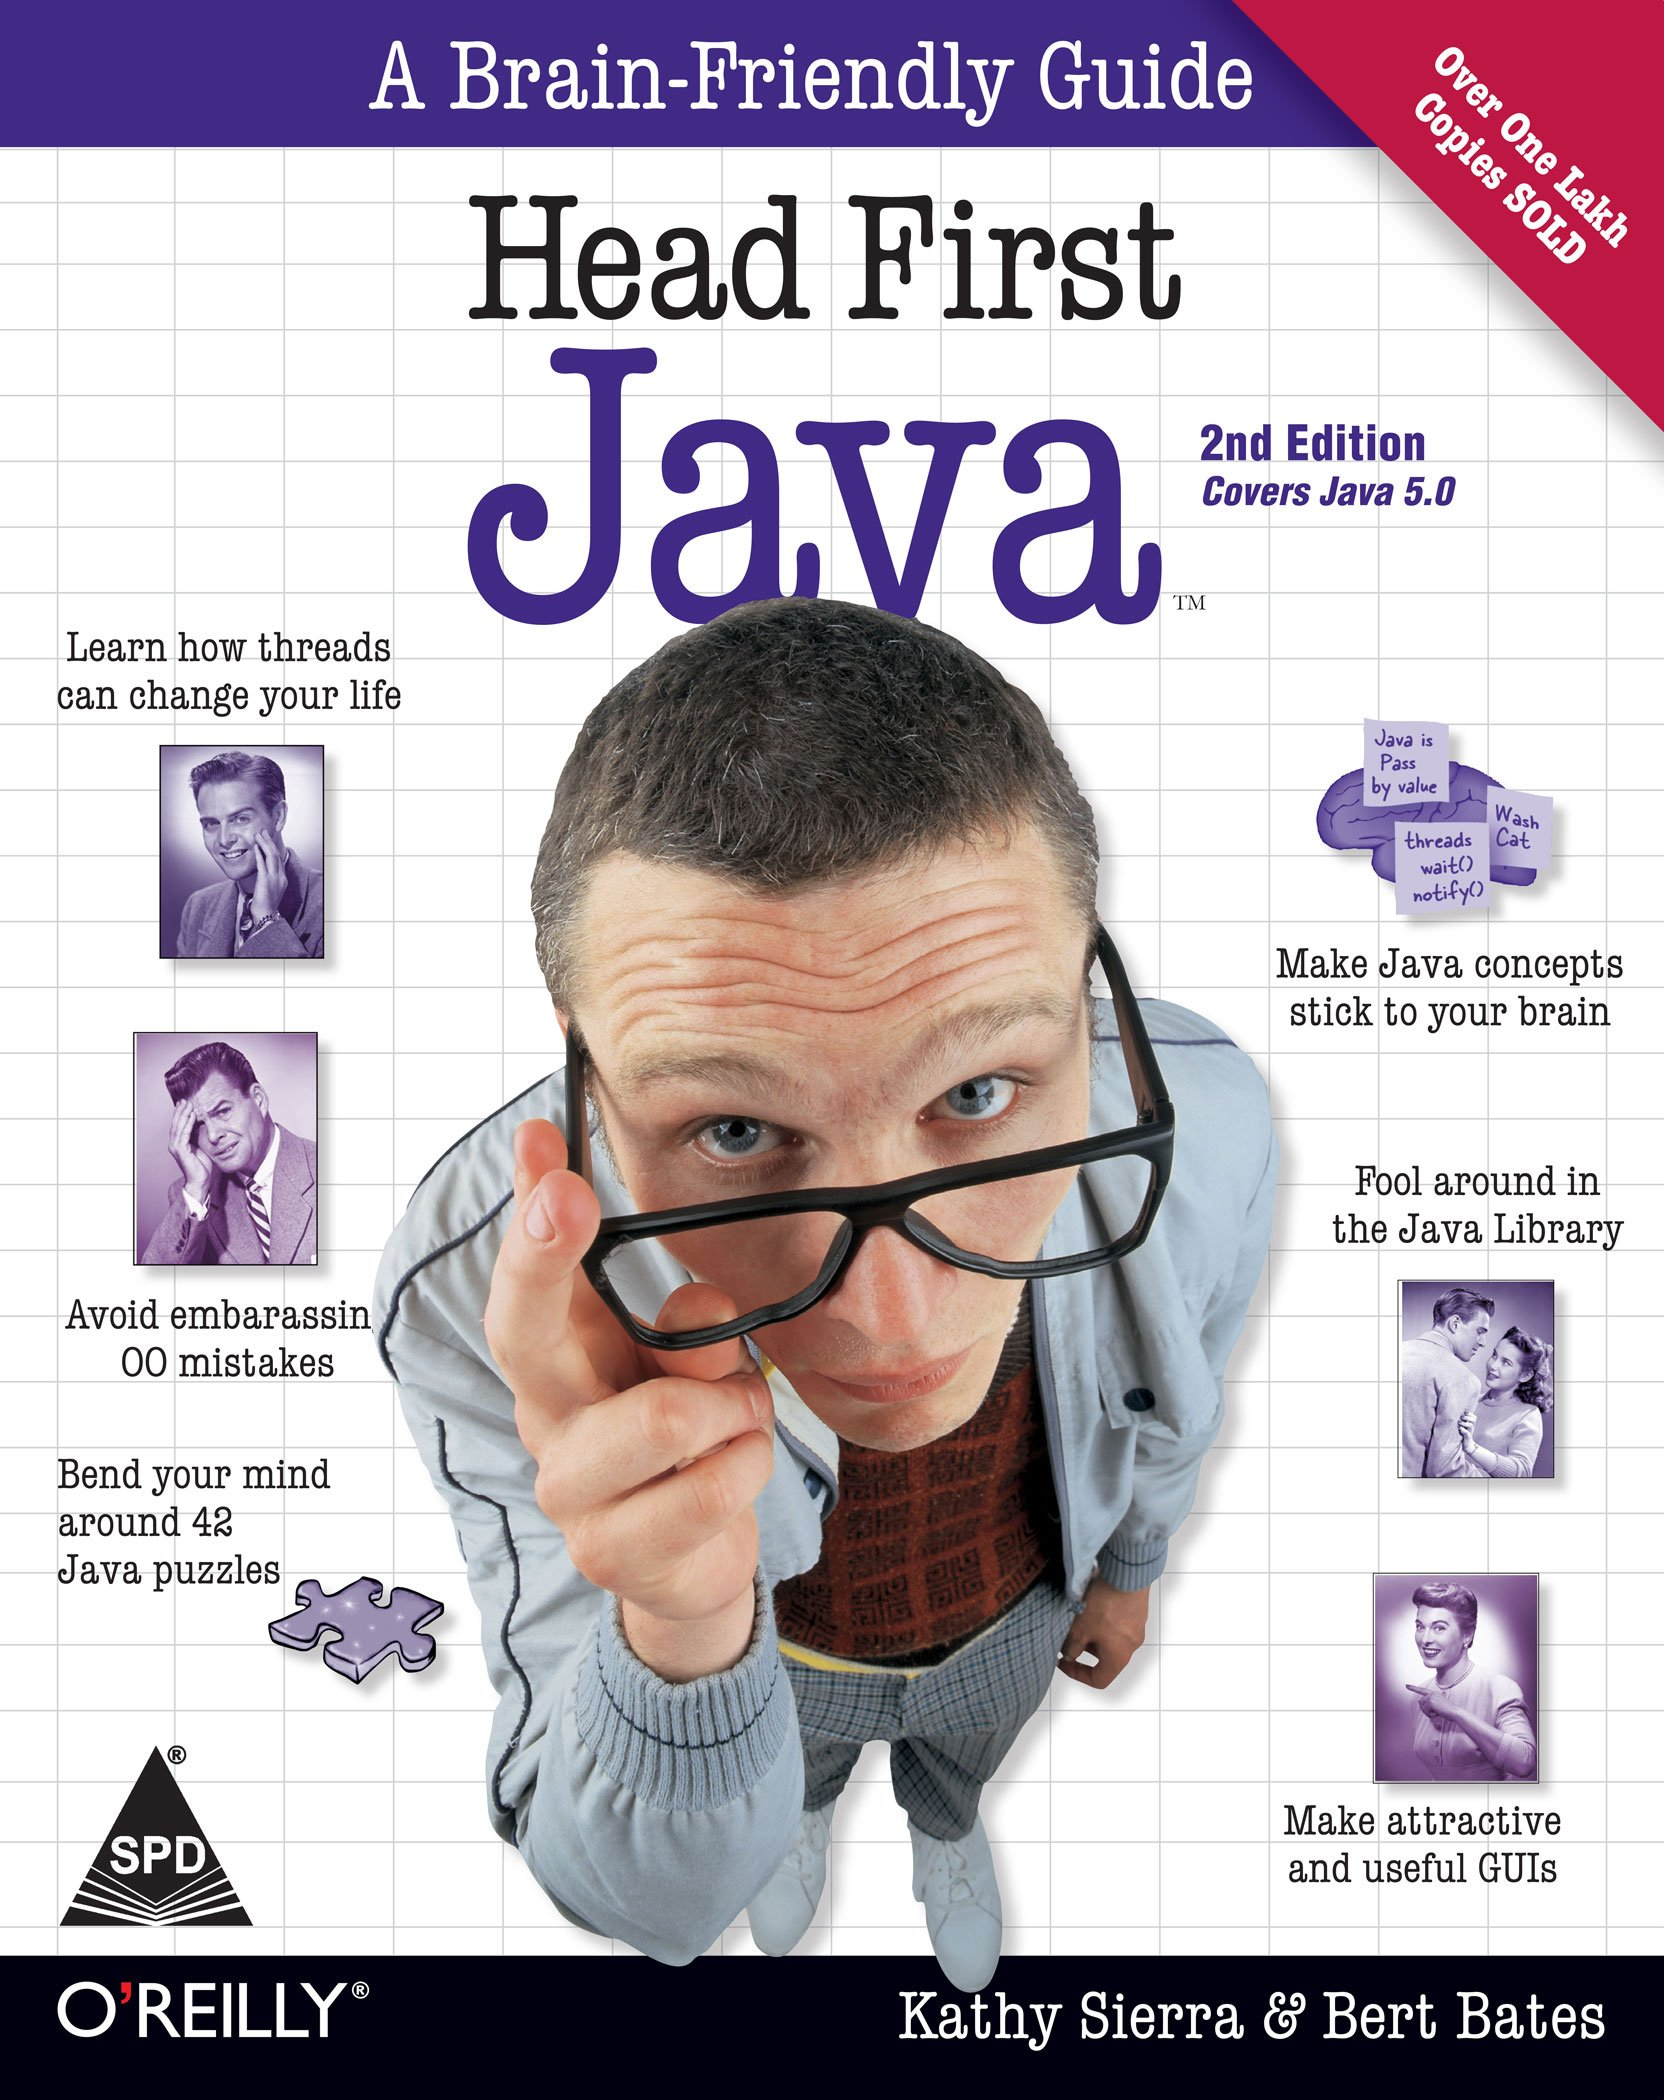 Buy Head First Java: A Brain-Friendly Guide, 2nd Edition (Covers